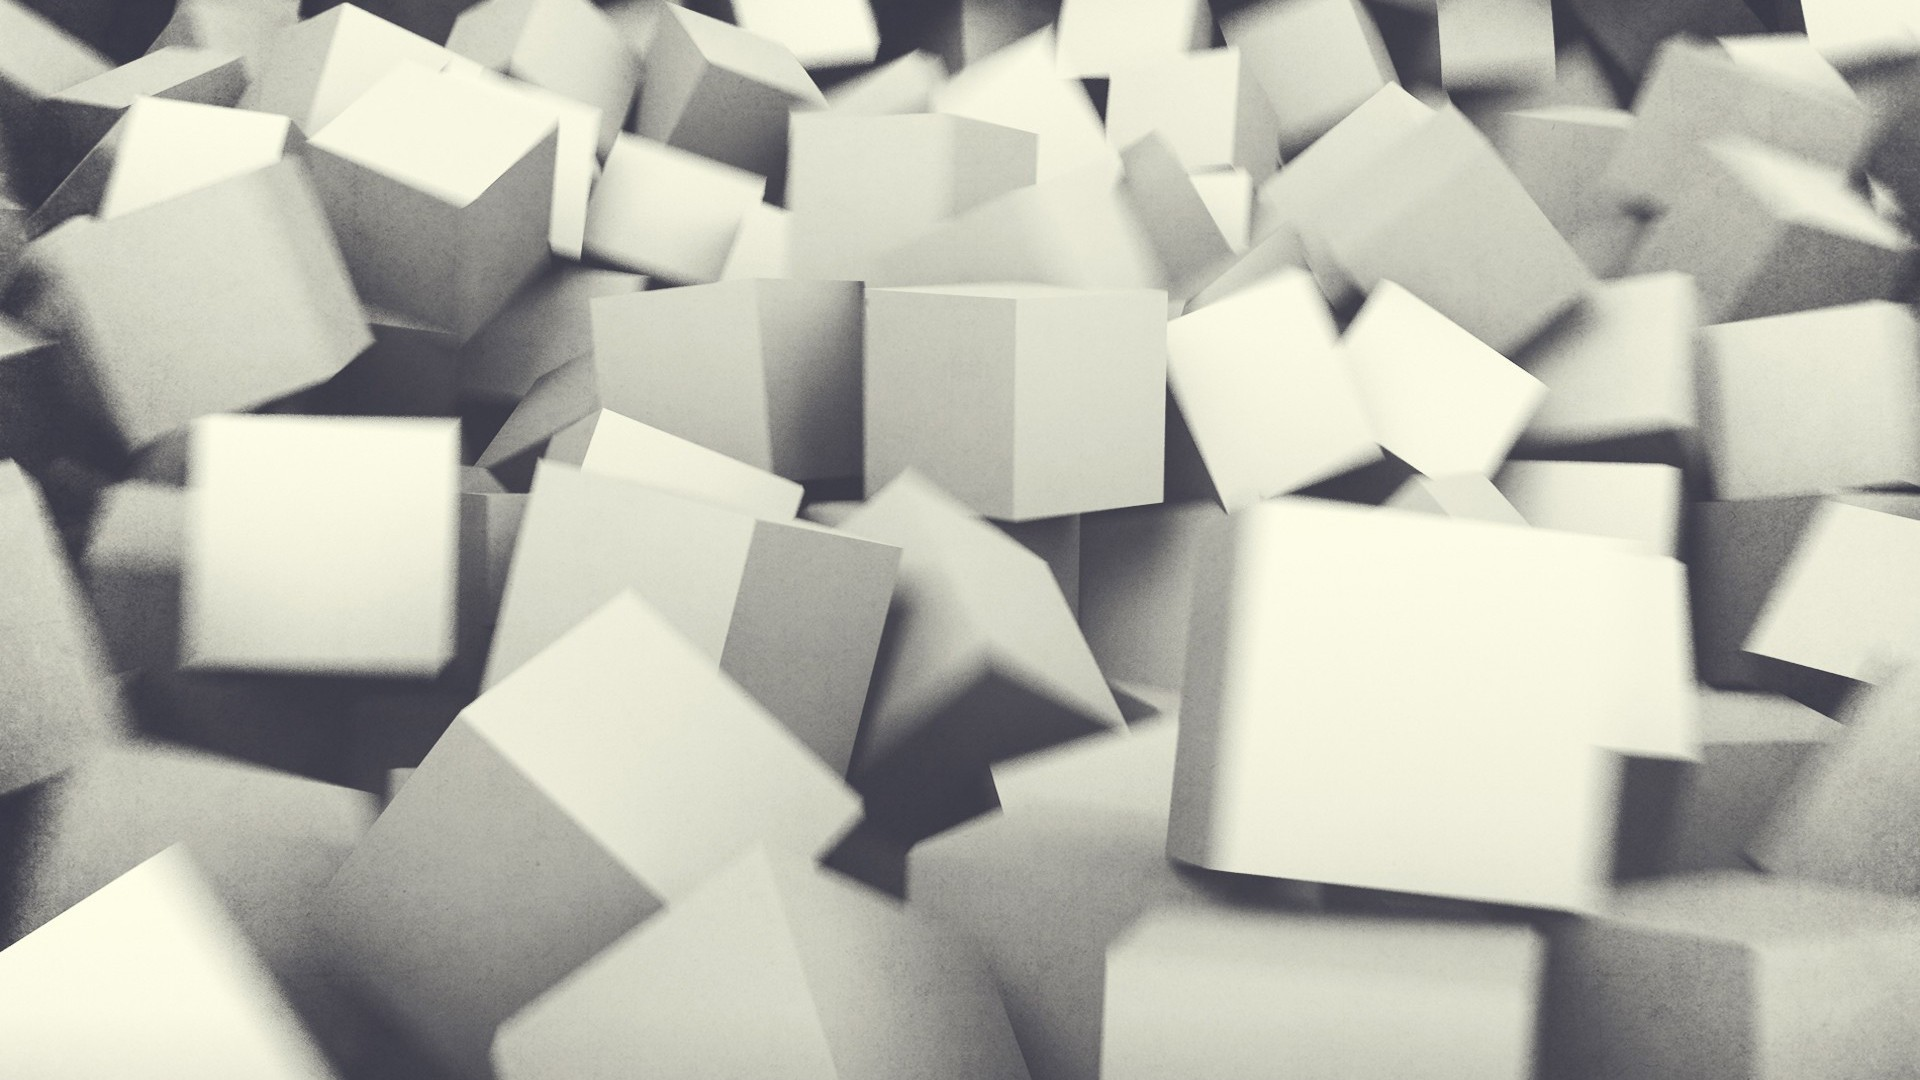 3d Cube Desktop Wallpaper Digital Art Cube Wallpapers Hd Desktop And Mobile